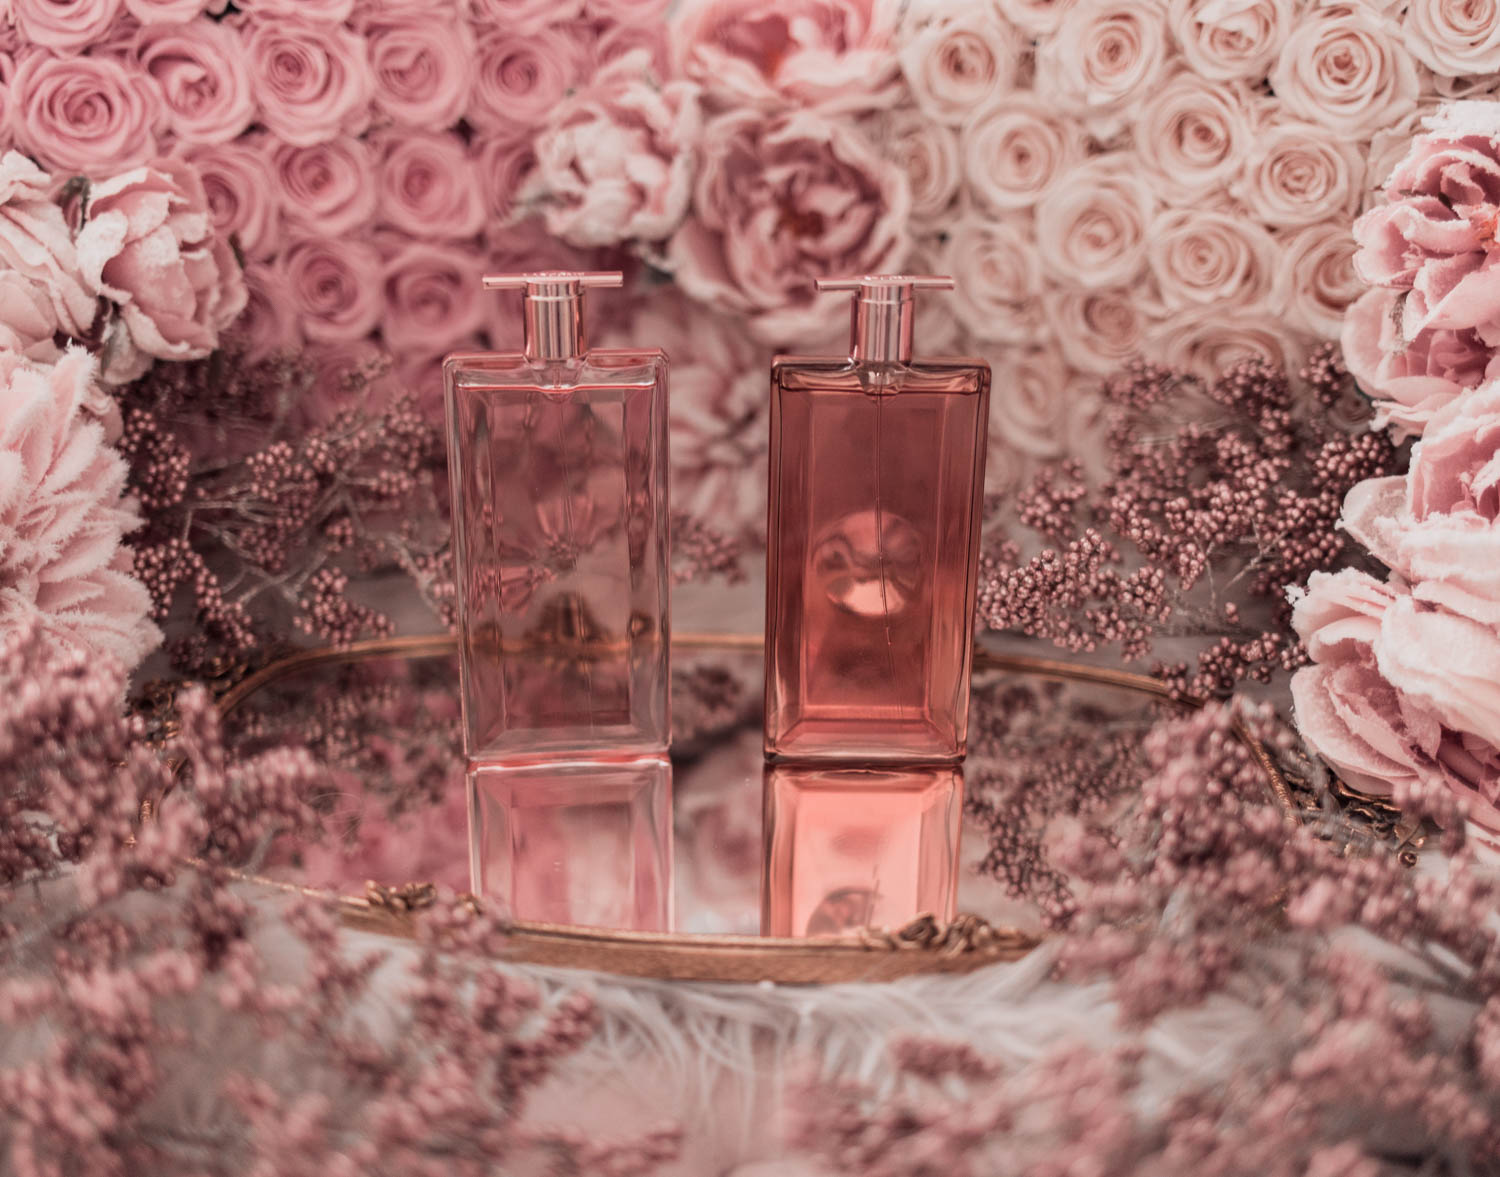 Feminine fashion blogger Elizabeth Hugen of Lizzie in Lace shares the best feminine perfumes and her girly fragrance collection including Lancome Idole